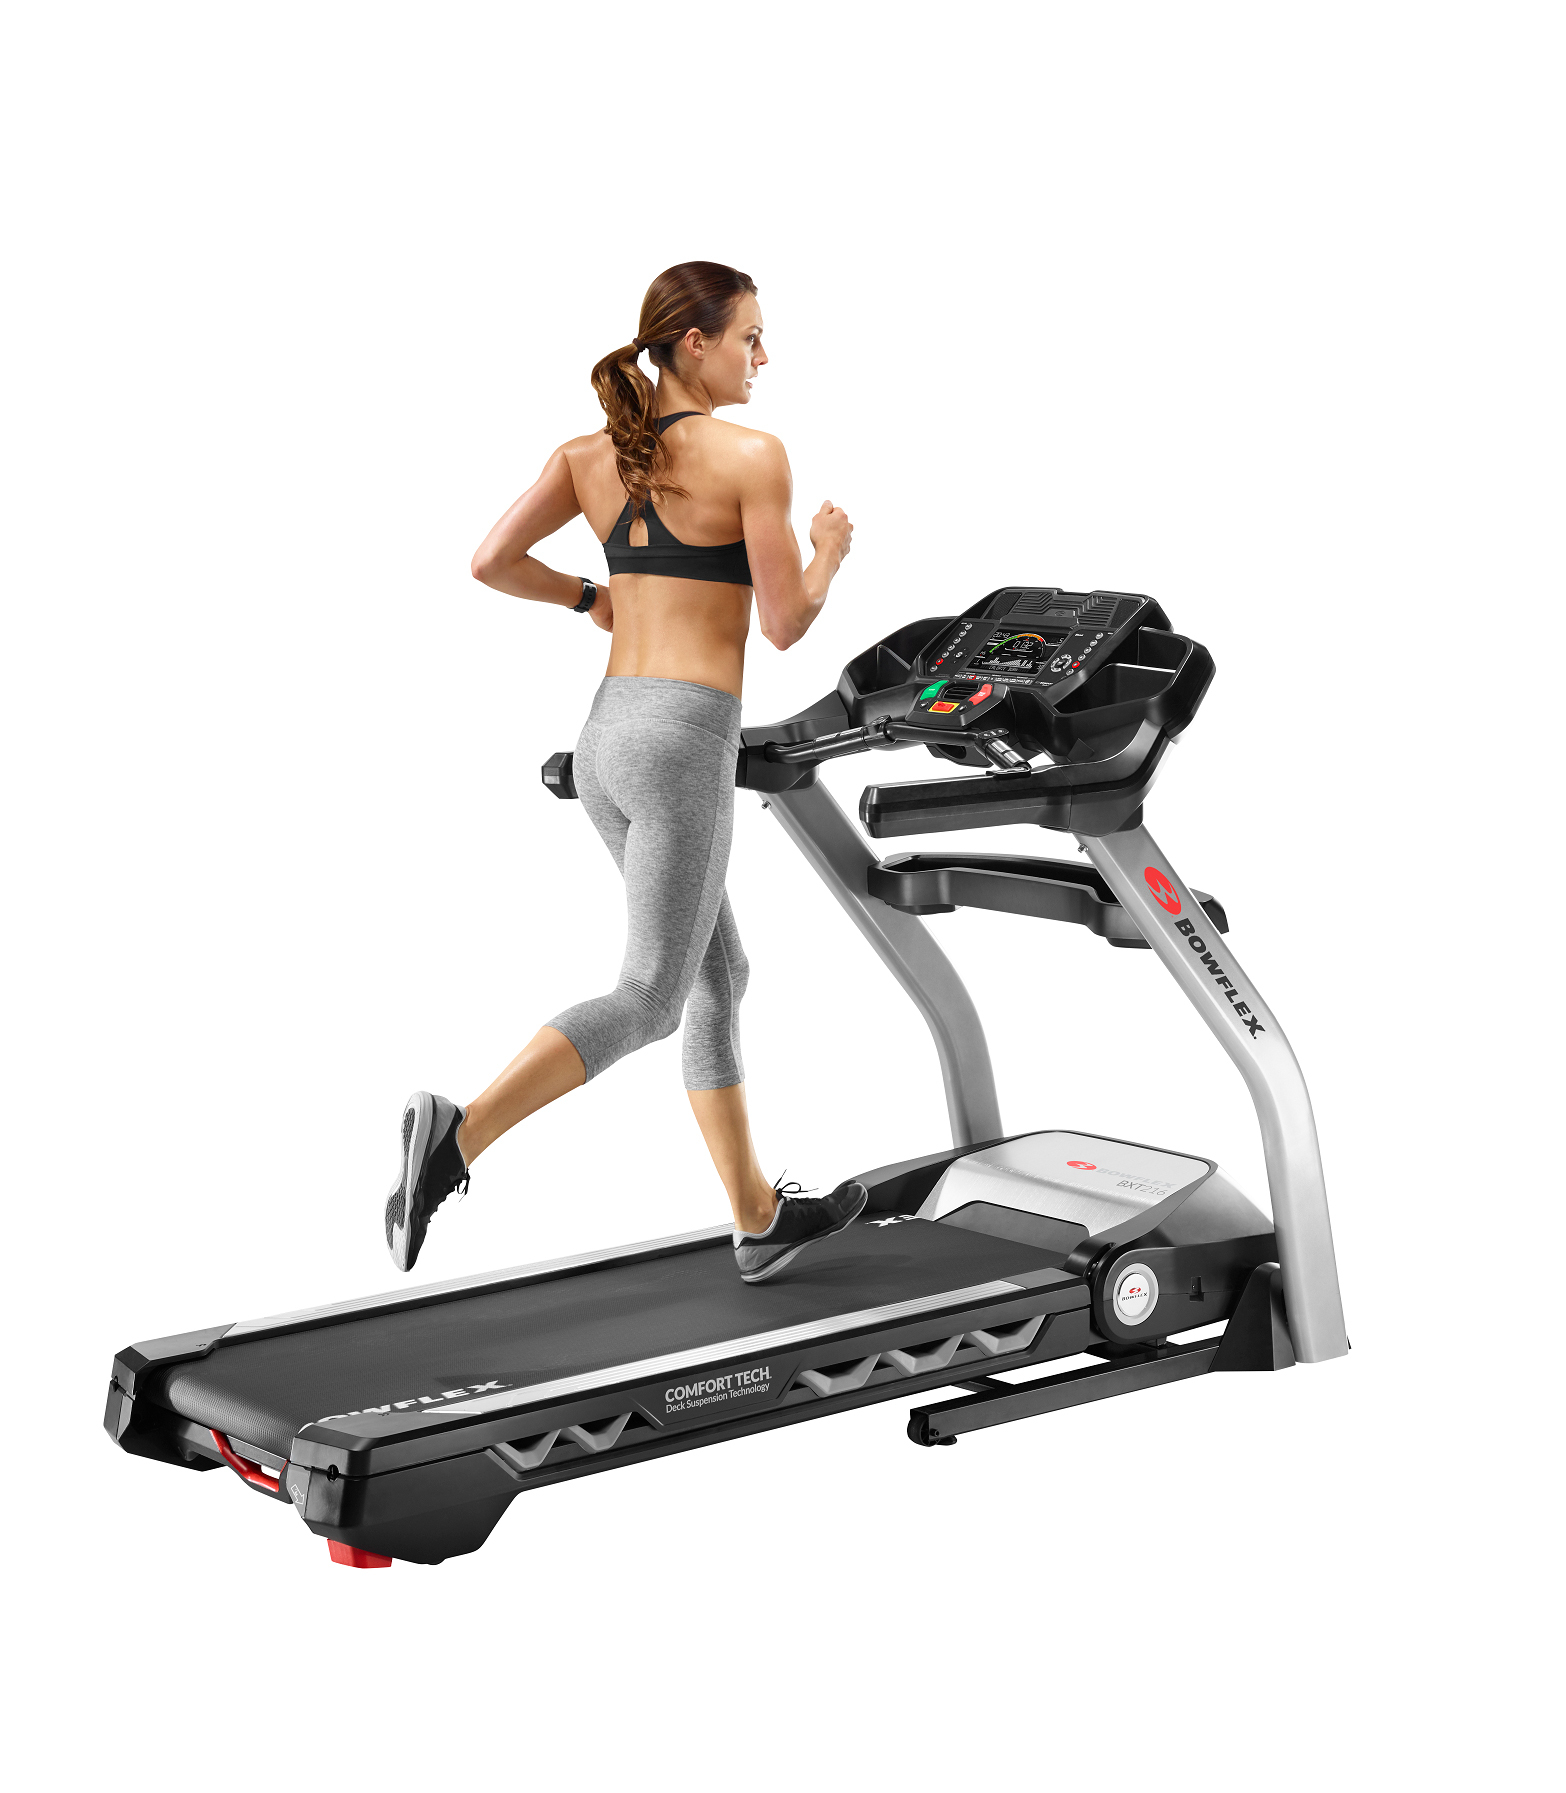 The top-of-the-line Bowflex® BXT216 treadmill allows users to burn calories while staying motivated by the machine's groundbreaking Burn Rate display console. (Photo: Business Wire)